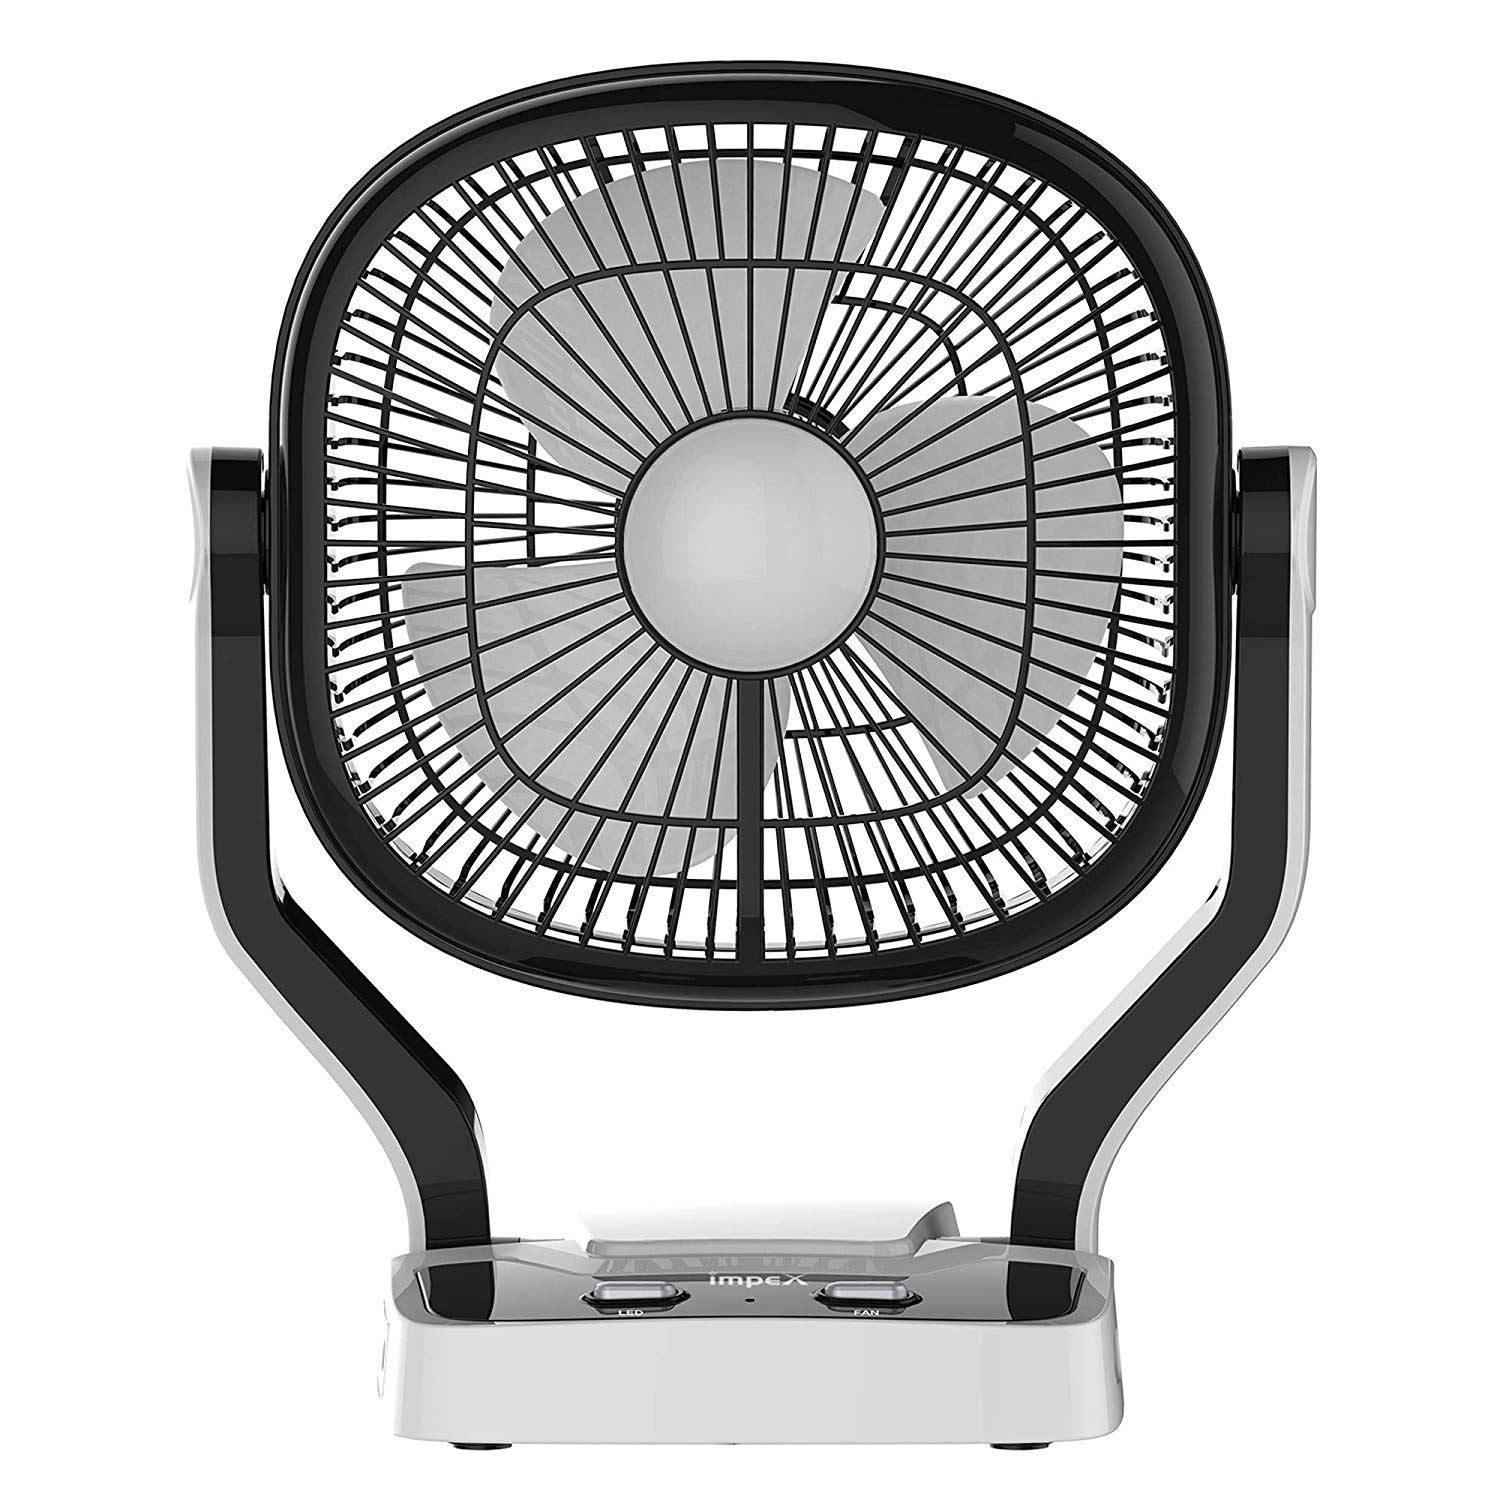 Best Emergency Light with Fan in India 2019